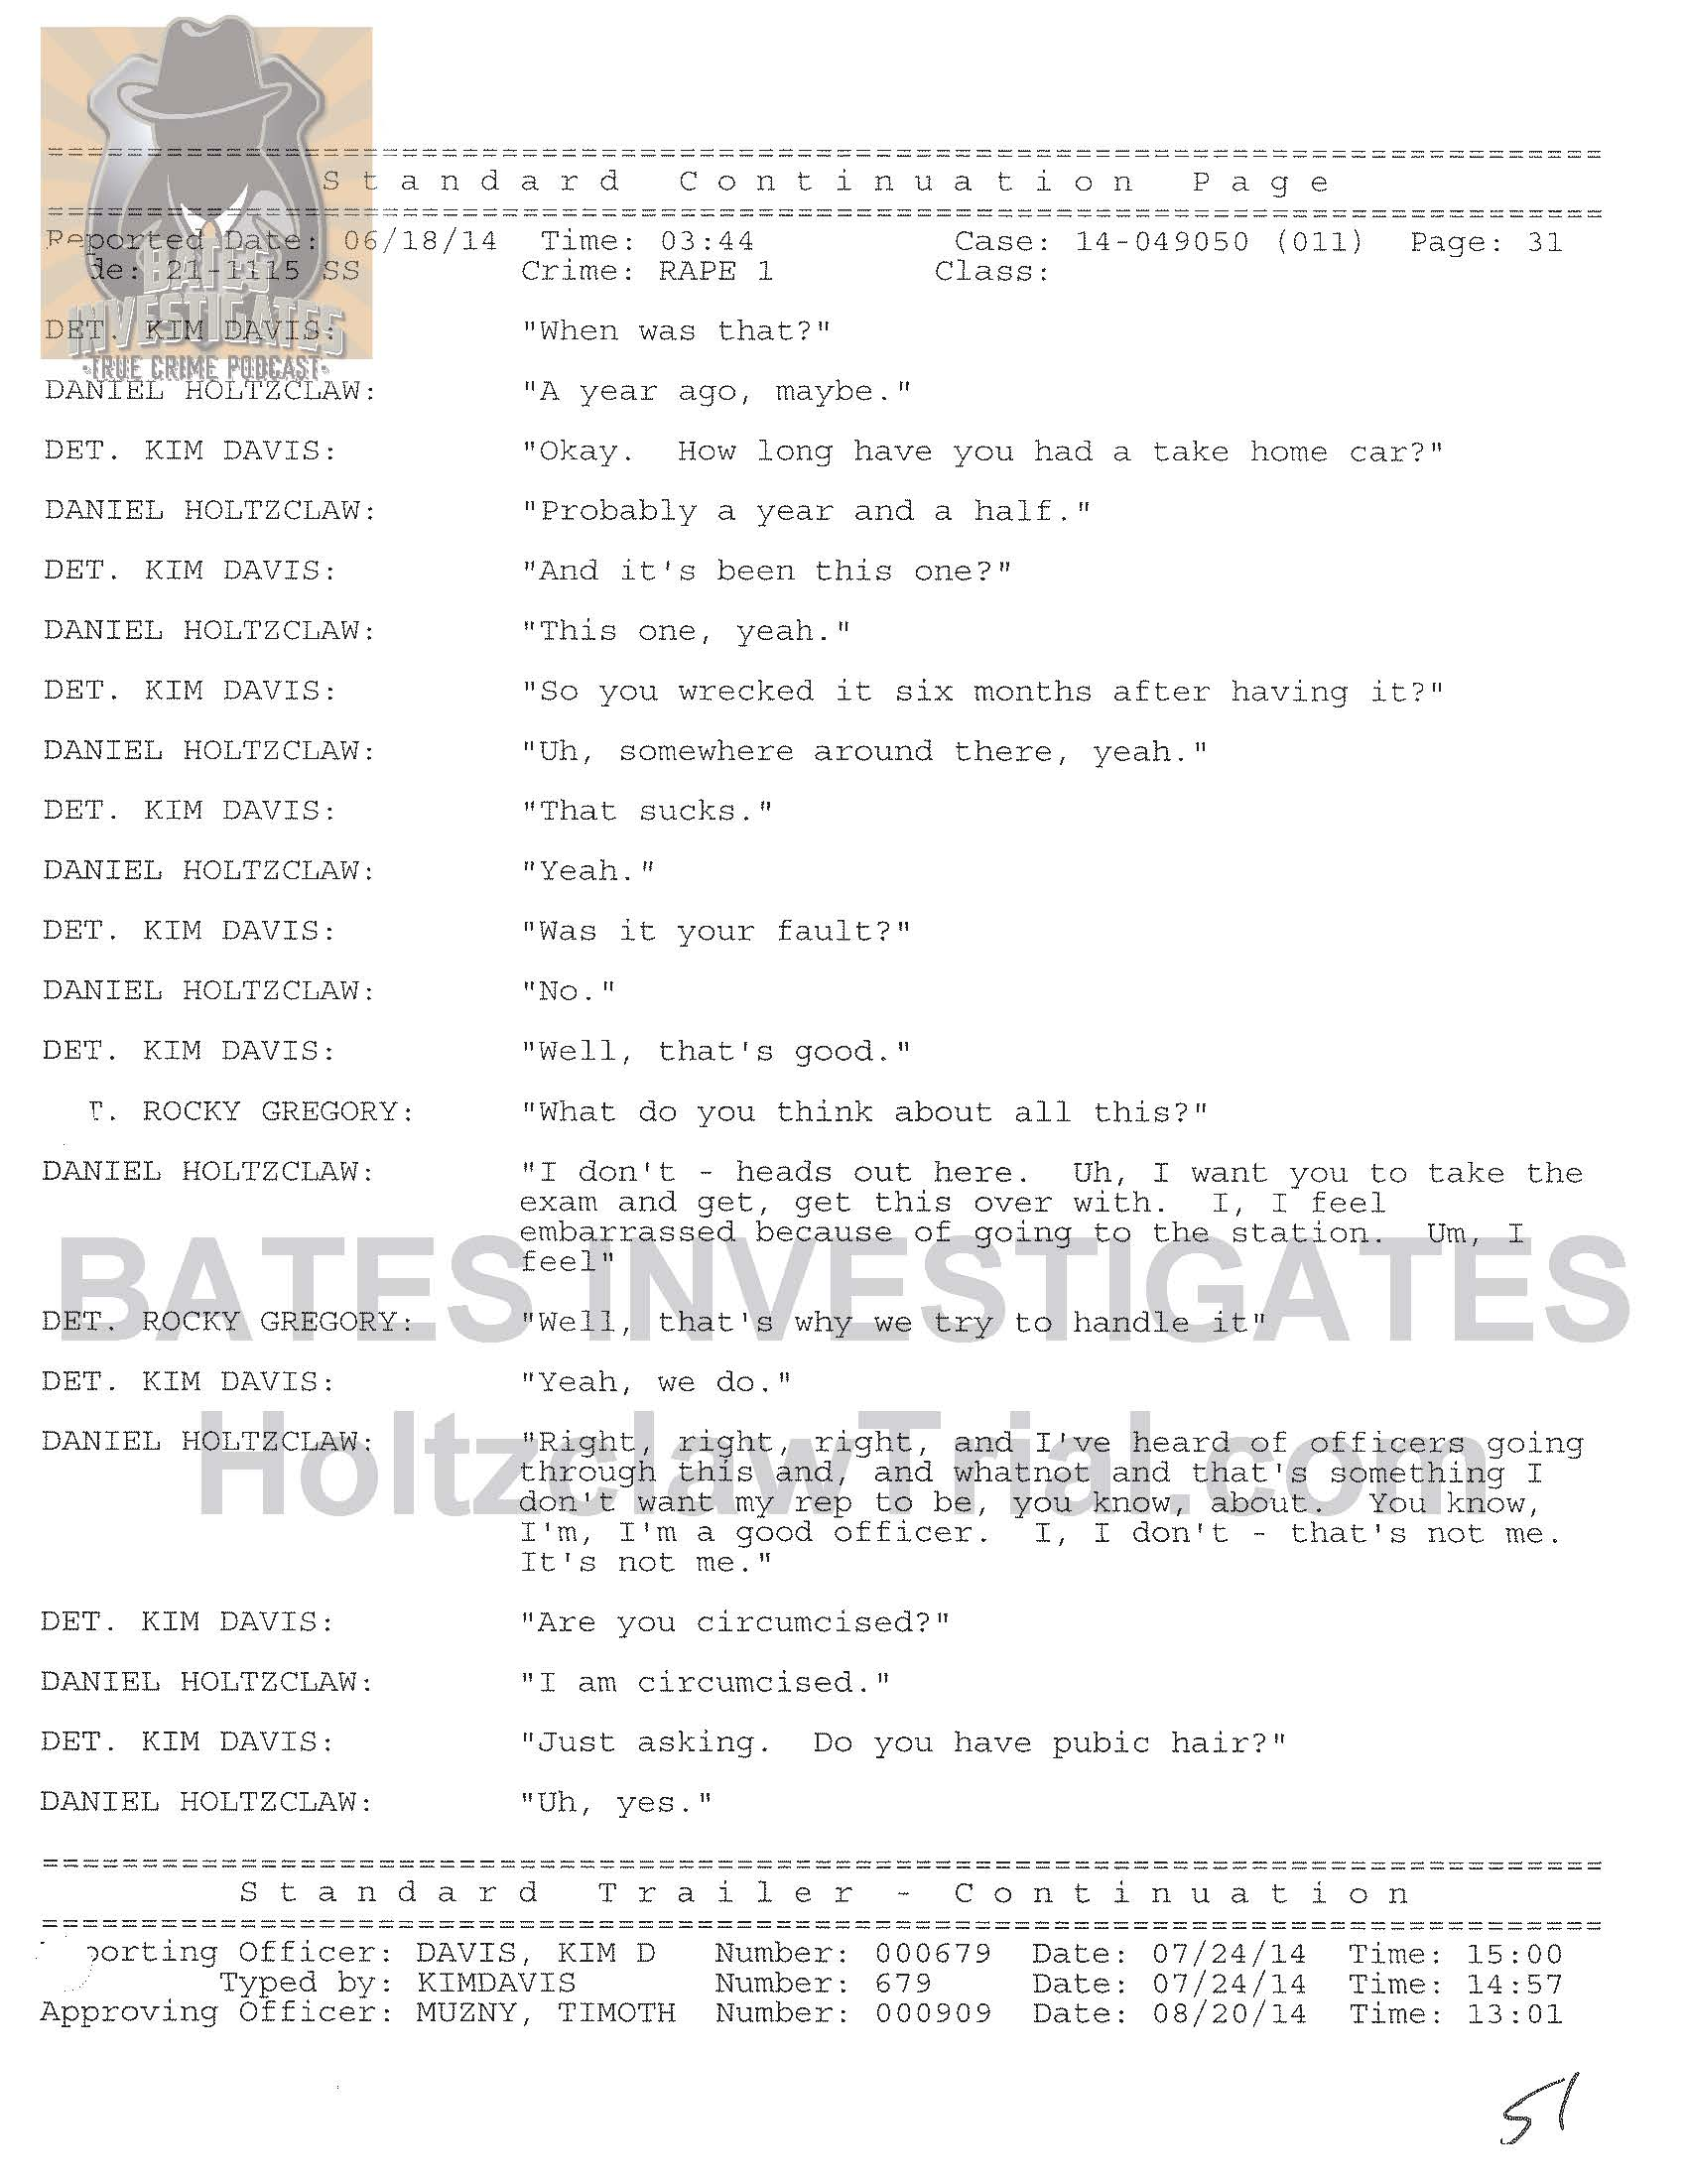 Holtzclaw Interrogation Transcript - Ep02 Redacted_Page_31.jpg